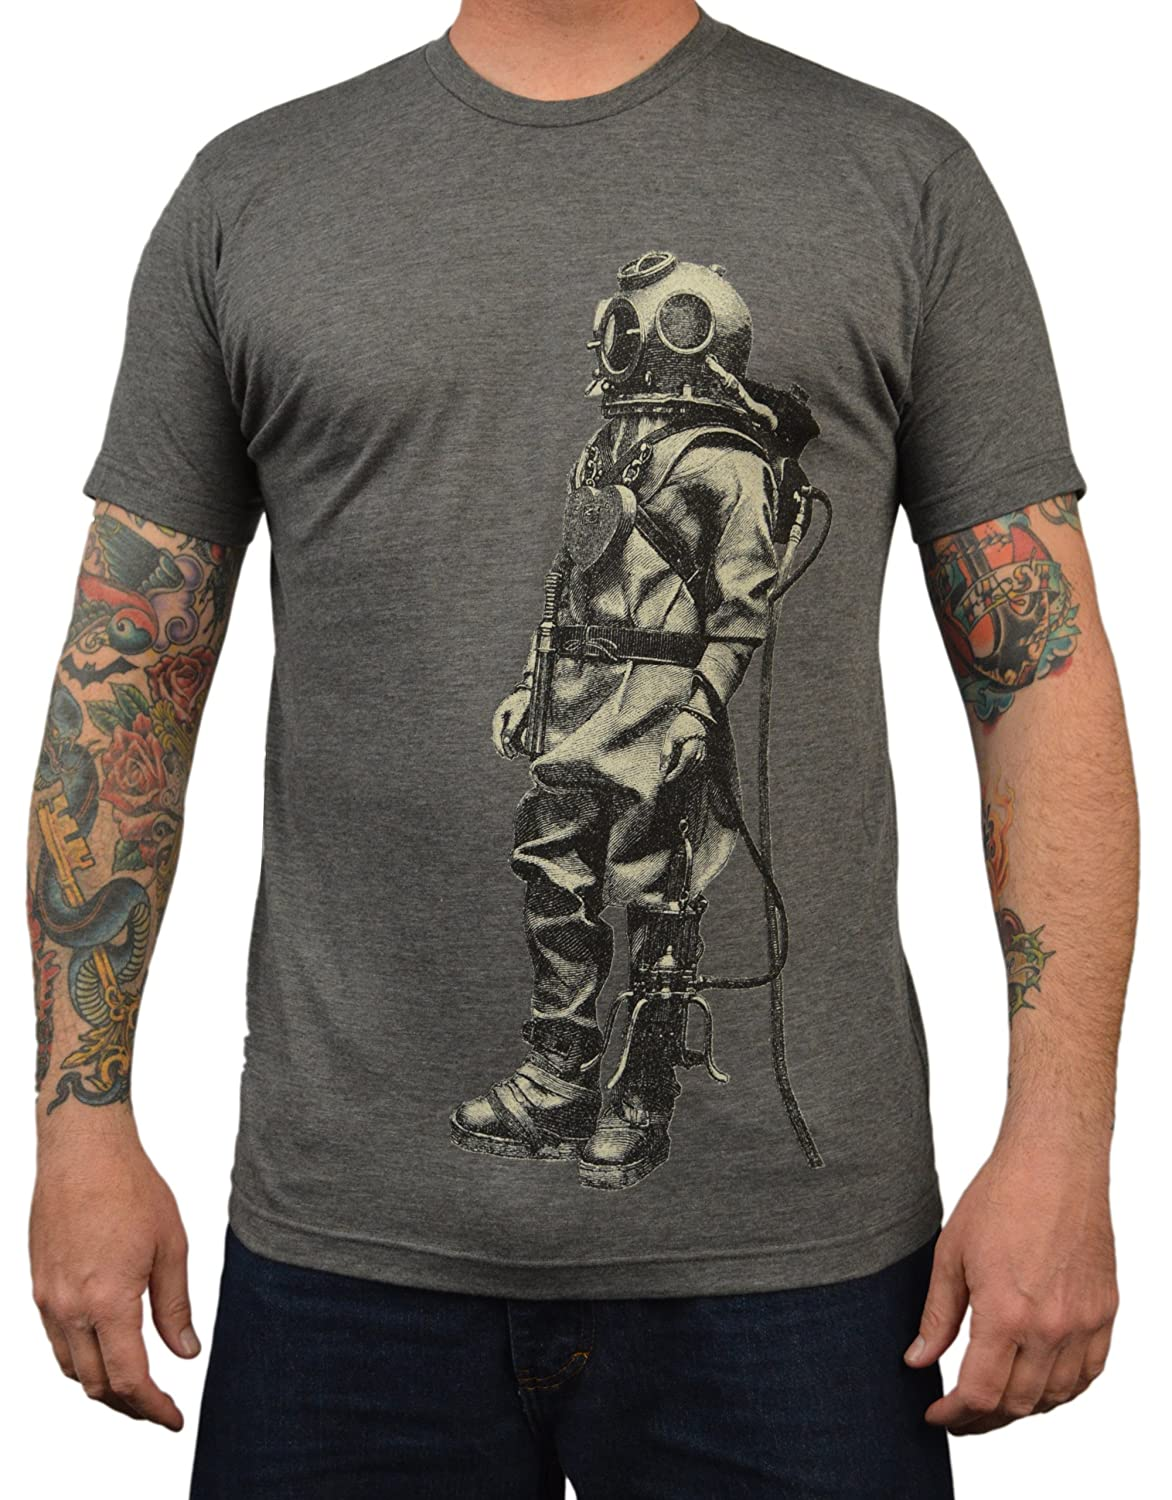 Men's Annex Explorer Ocean Sea Diver Steampunk Vintage Retro Art T-Shirt Tee